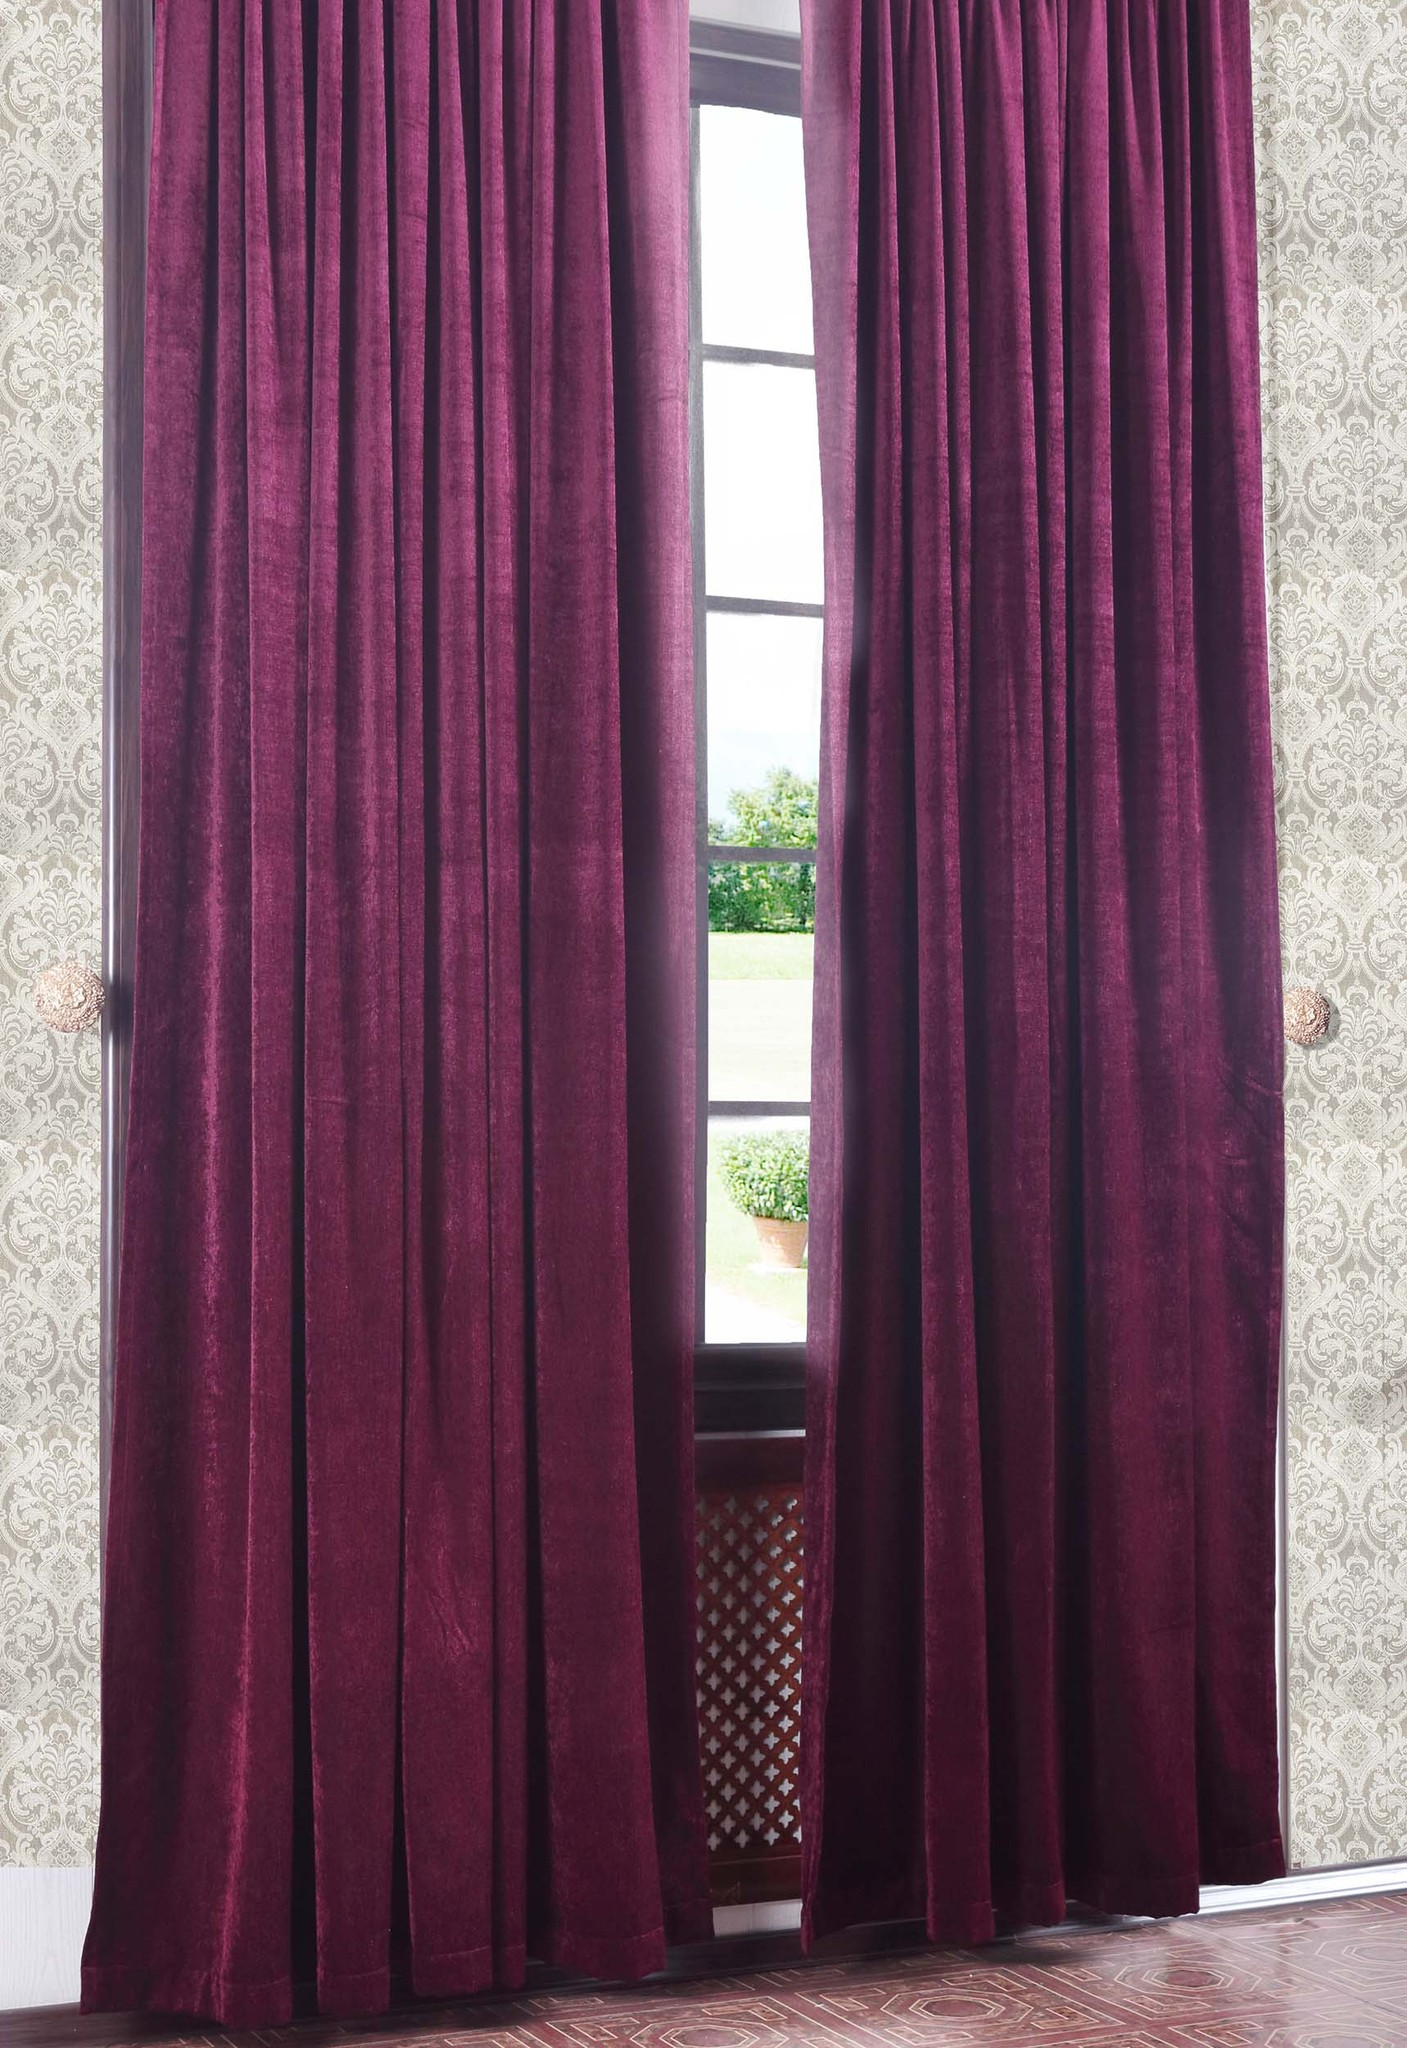 Cherry curtains